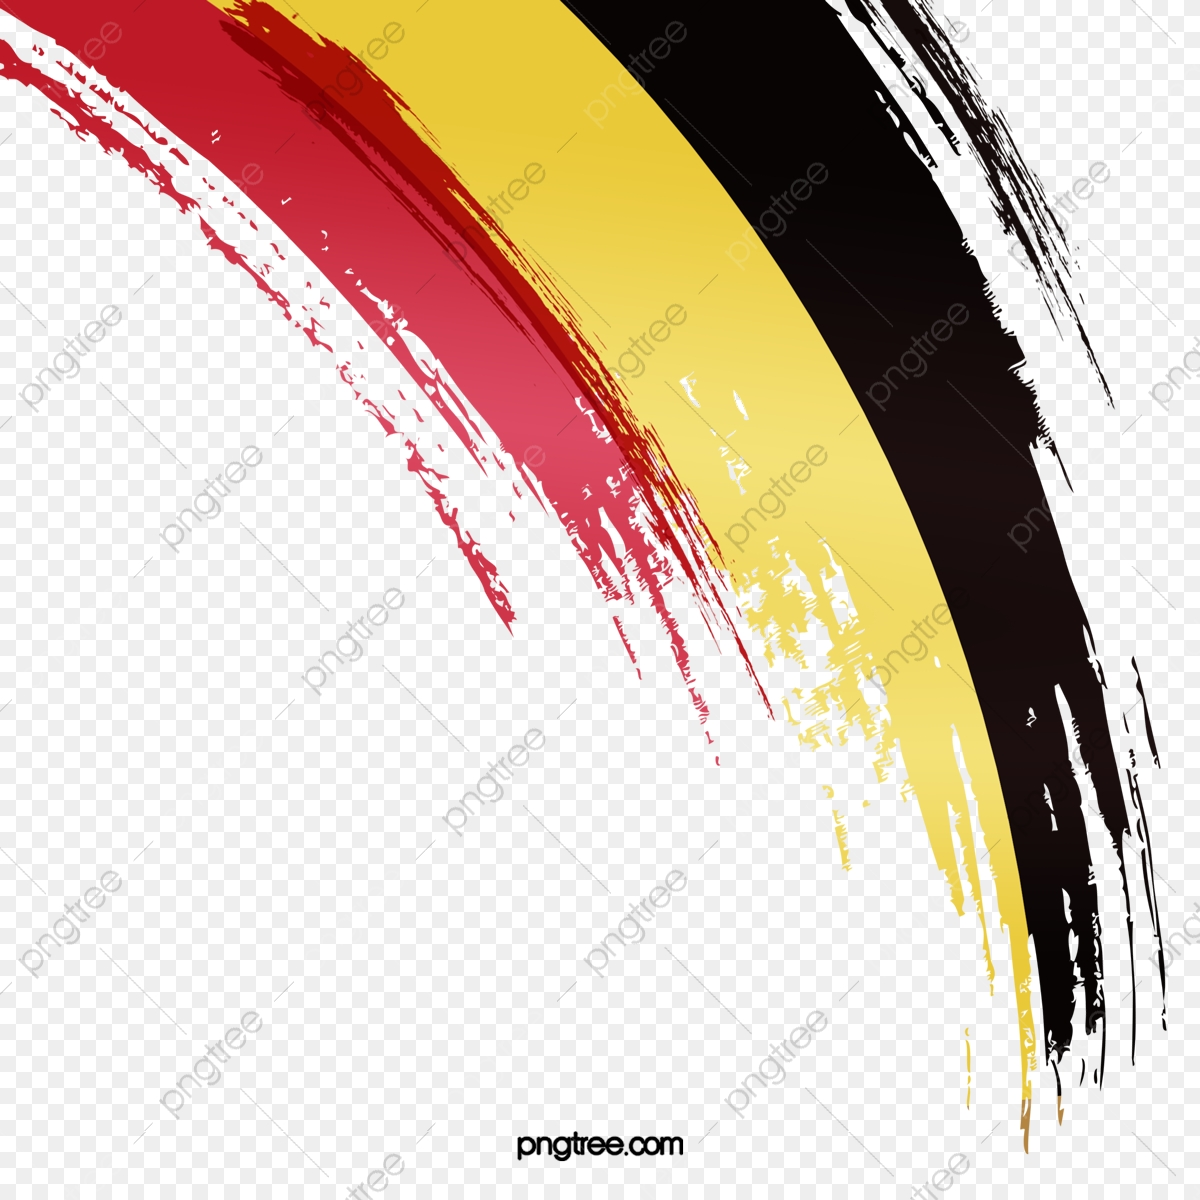 German Flag Png Images Vector And Psd Files Free Download On Pngtree